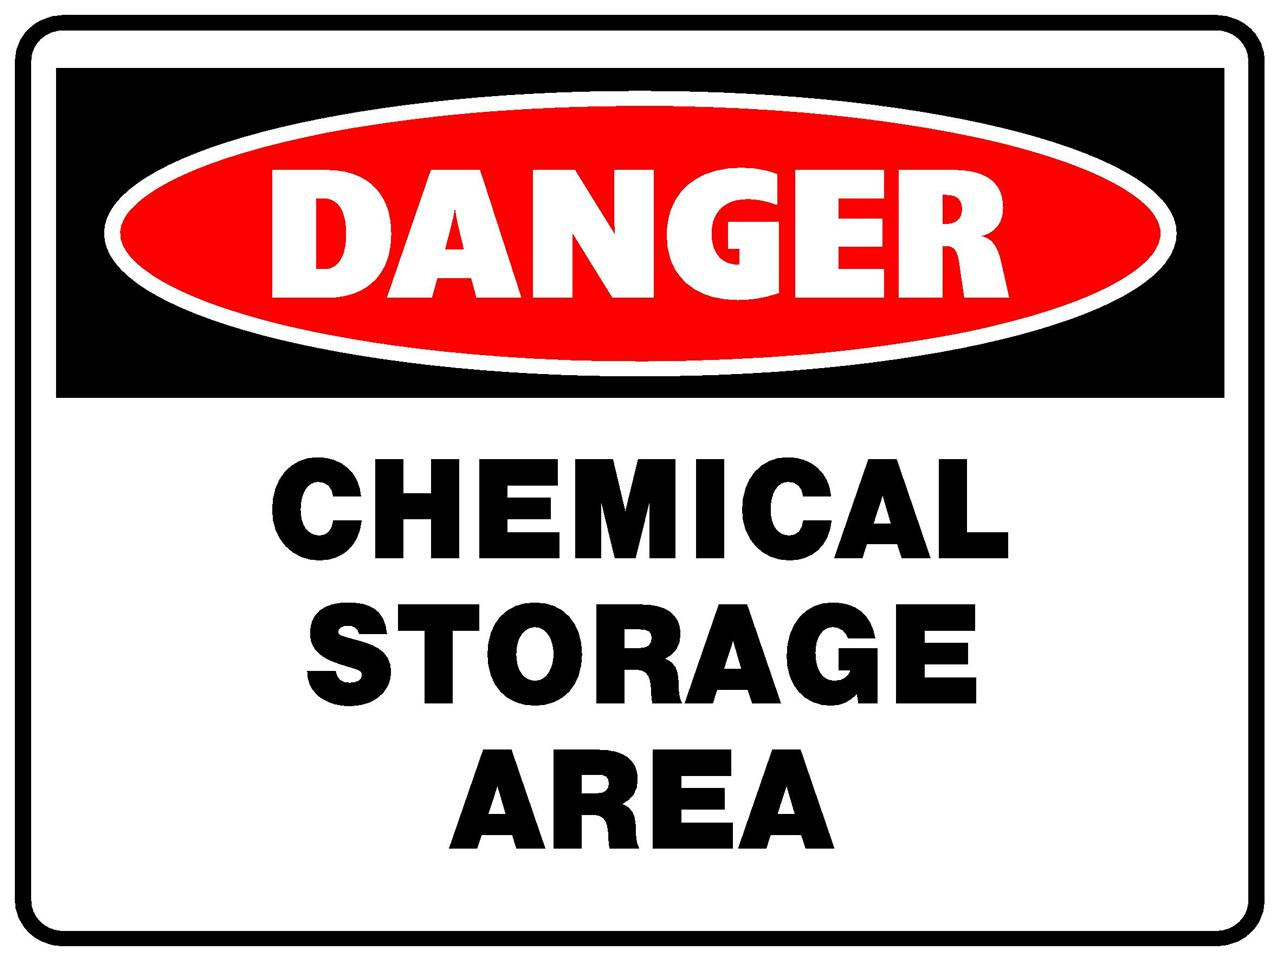 Danger Chemical Storage Area Metal Sign 300 X 225mm